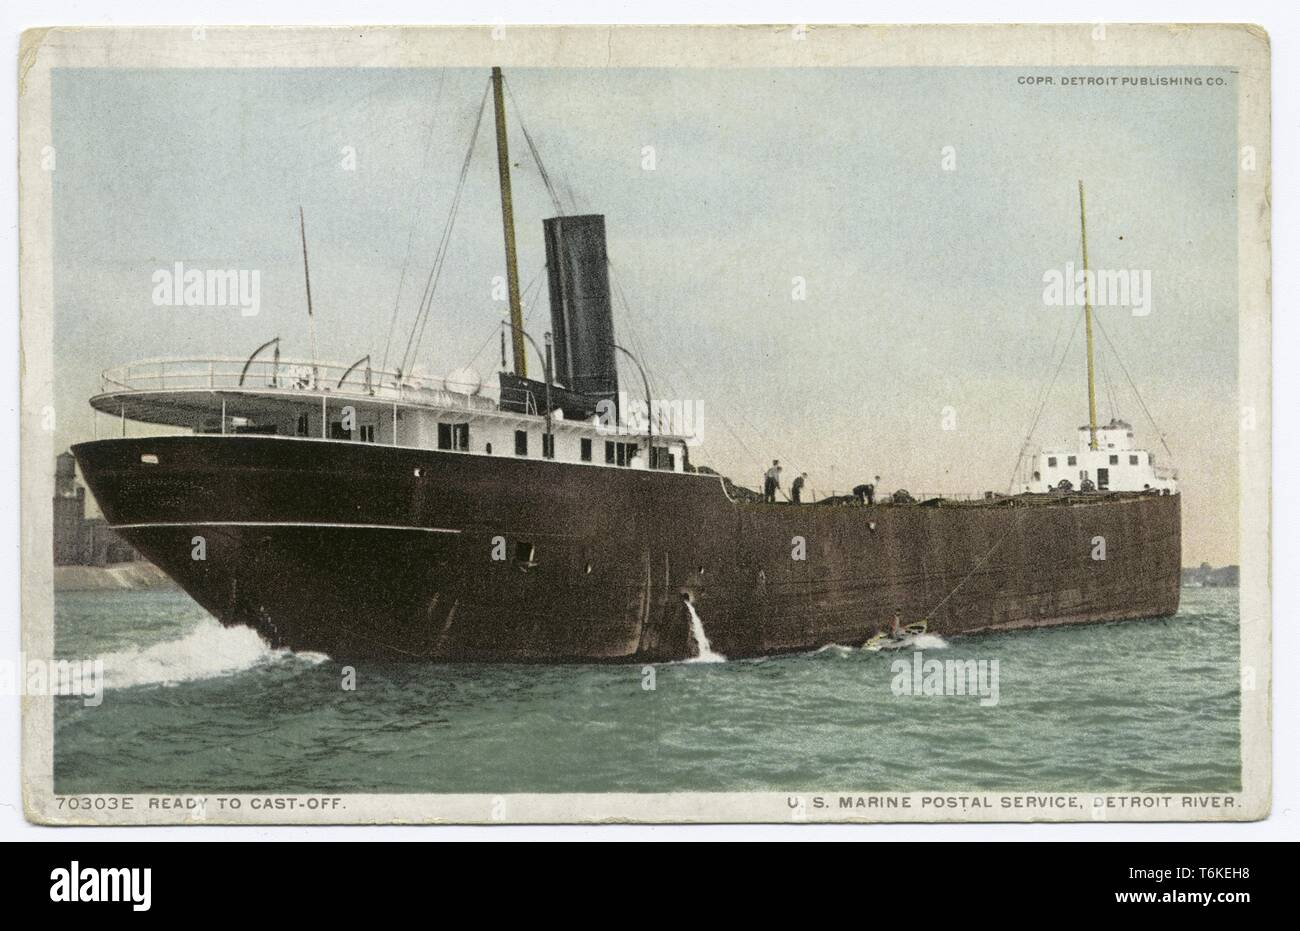 Detroit Publishing Company vintage postcard depicting a ship of the United States Marine Postal Service casting off onto the Detroit River from Detroit, Michigan, 1914. From the New York Public Library. () Stock Photo